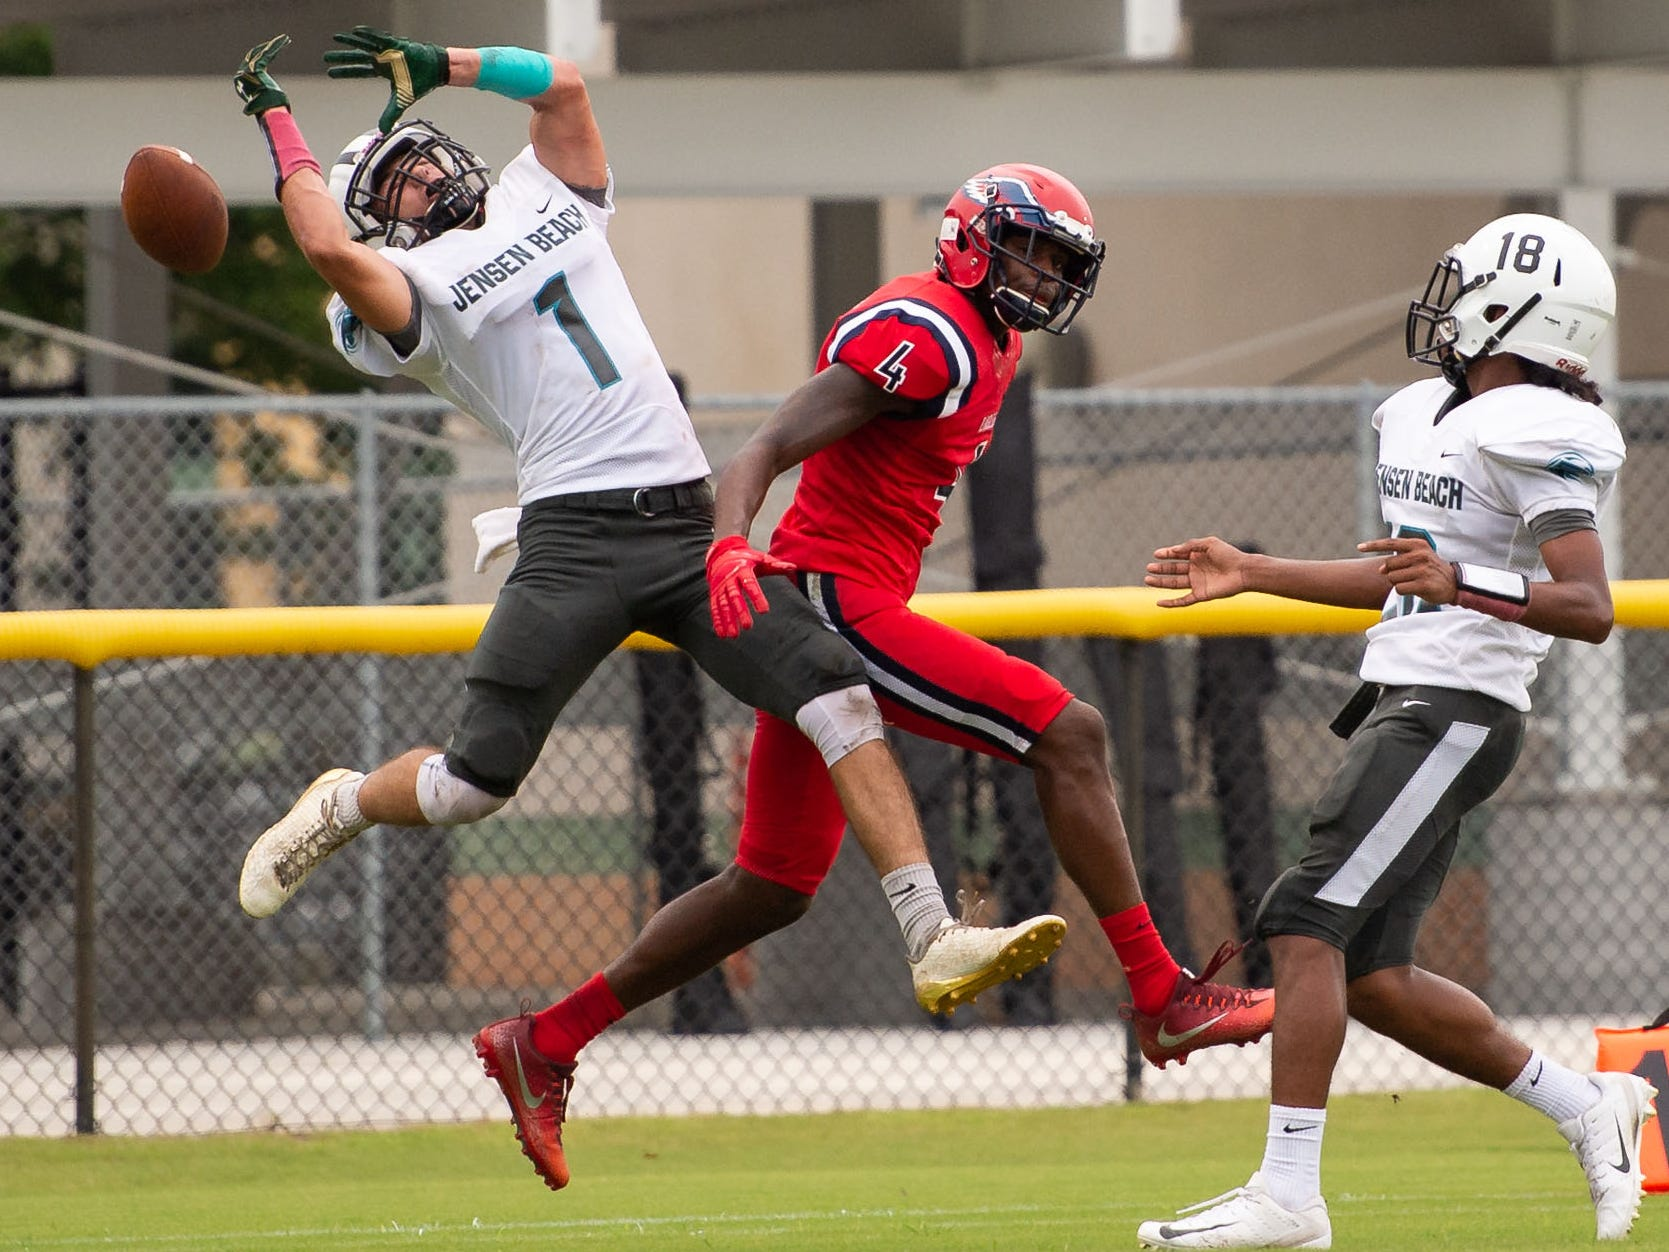 Jensen Beach's Liam Zaccheo (right) nearly intercepts a pass intended for St. Lucie West Centennial's Trequan Collins in the first quarter of the high school football game Wednesday, Aug. 29, 2018, at South County Regional Stadium in Port St. Lucie.